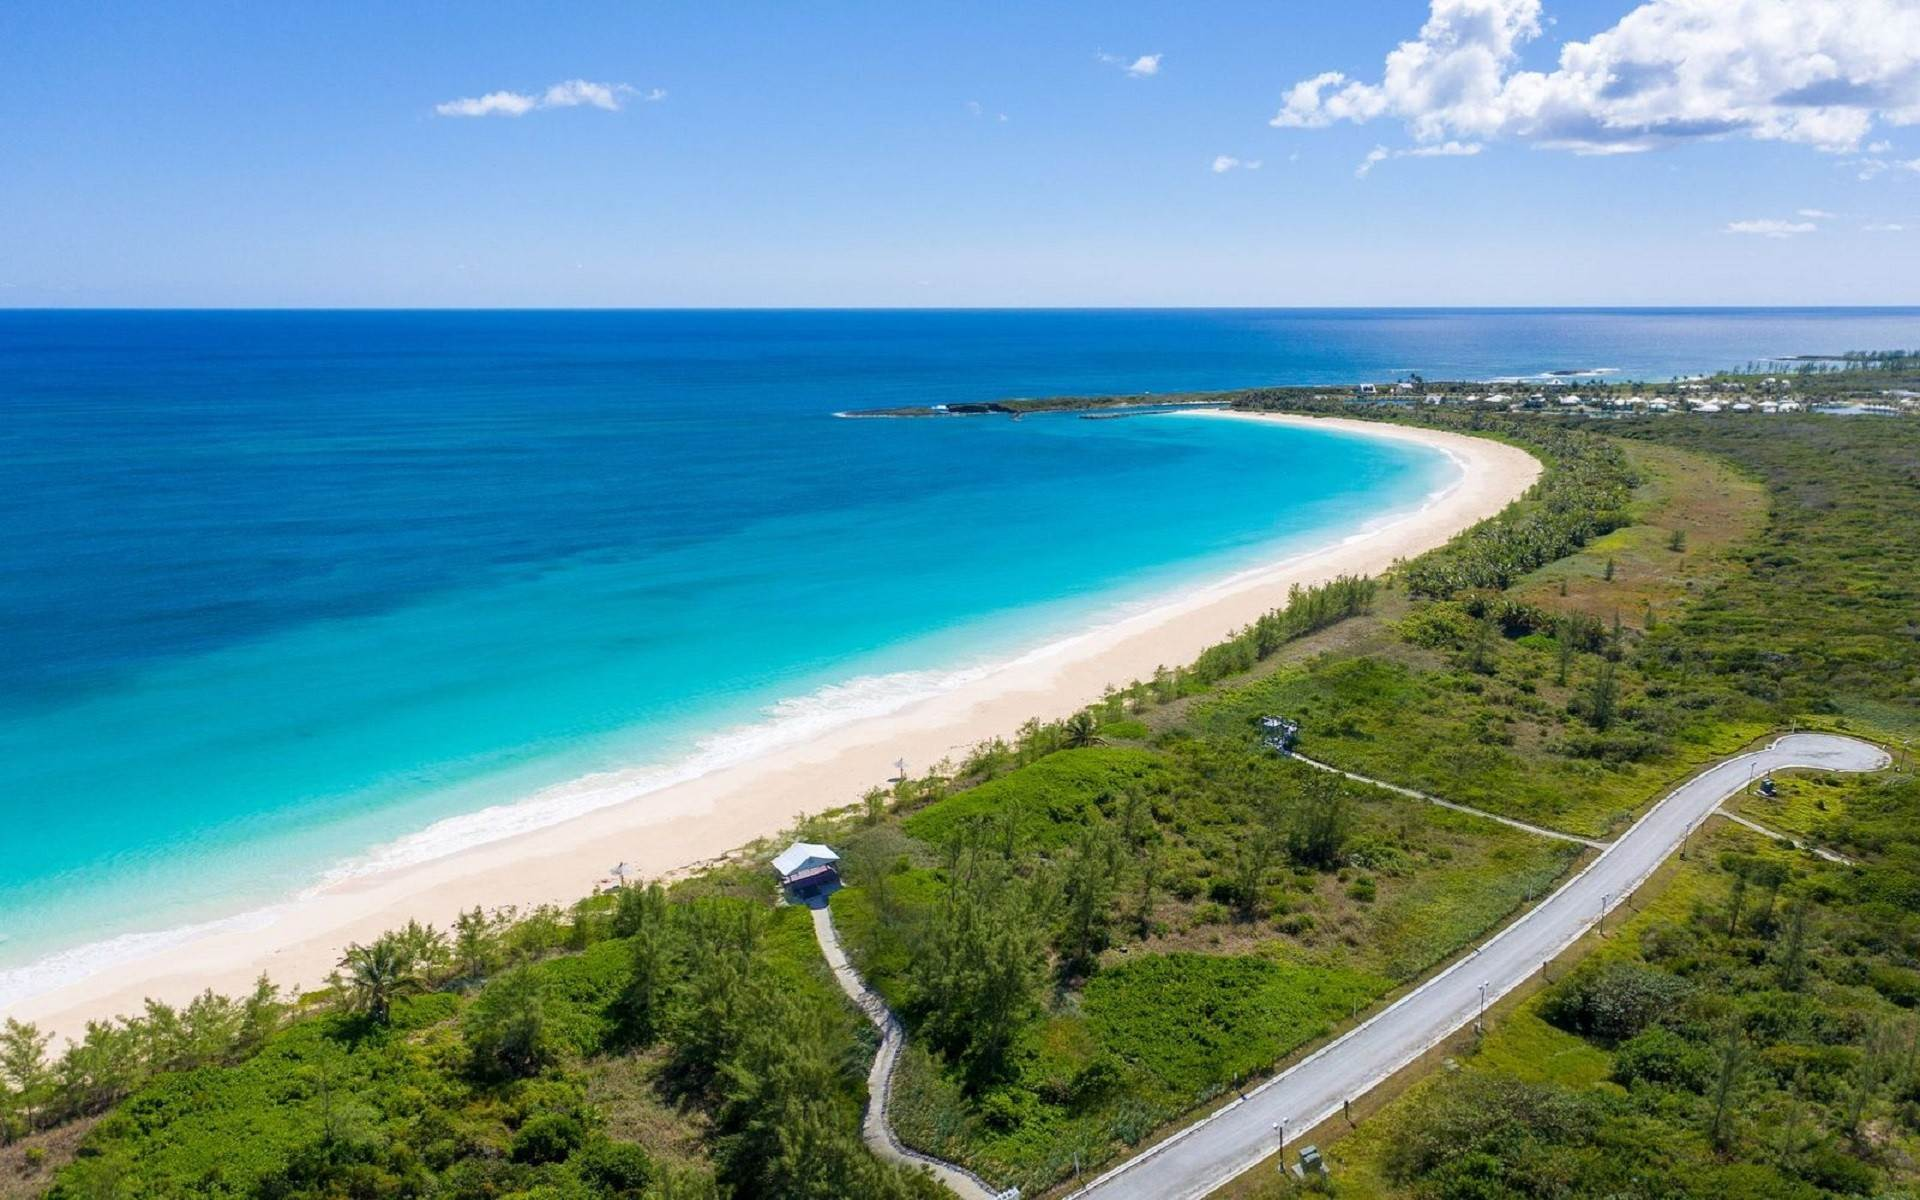 Land/Lot for Sale at Fabulous beachfront acreage in South Abaco - MLS 41992 Abaco, Bahamas